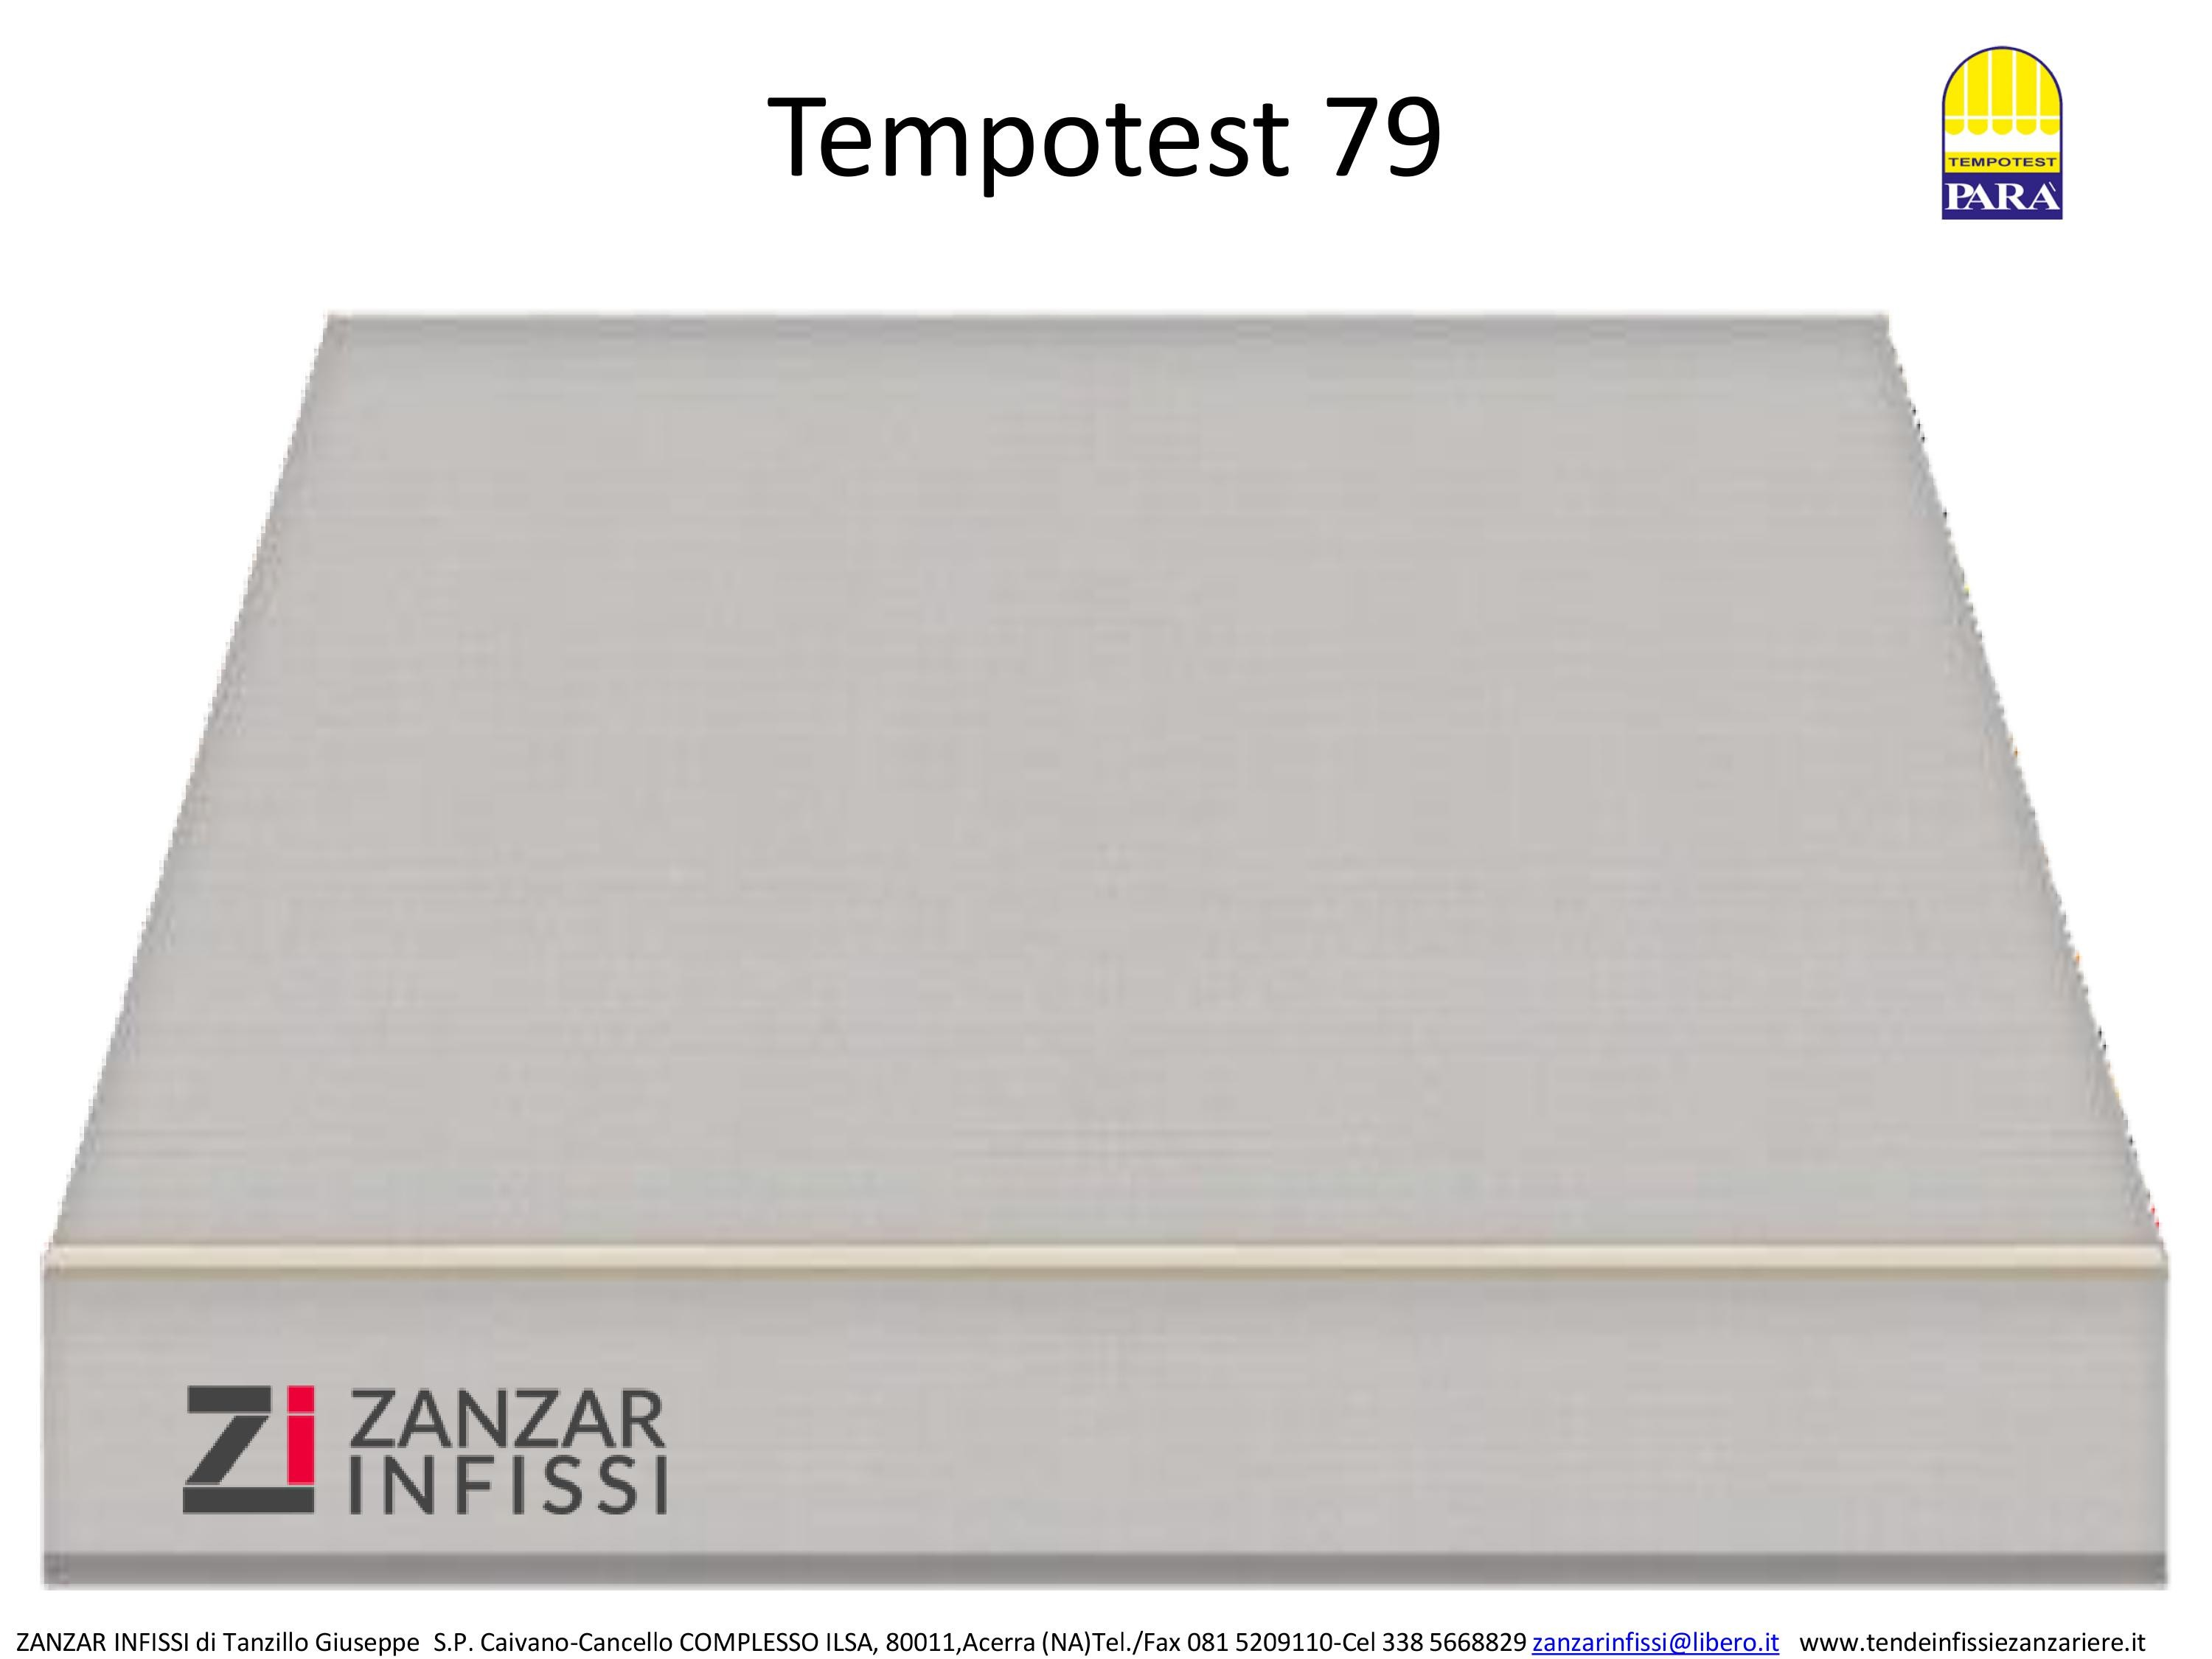 Tempotest 79